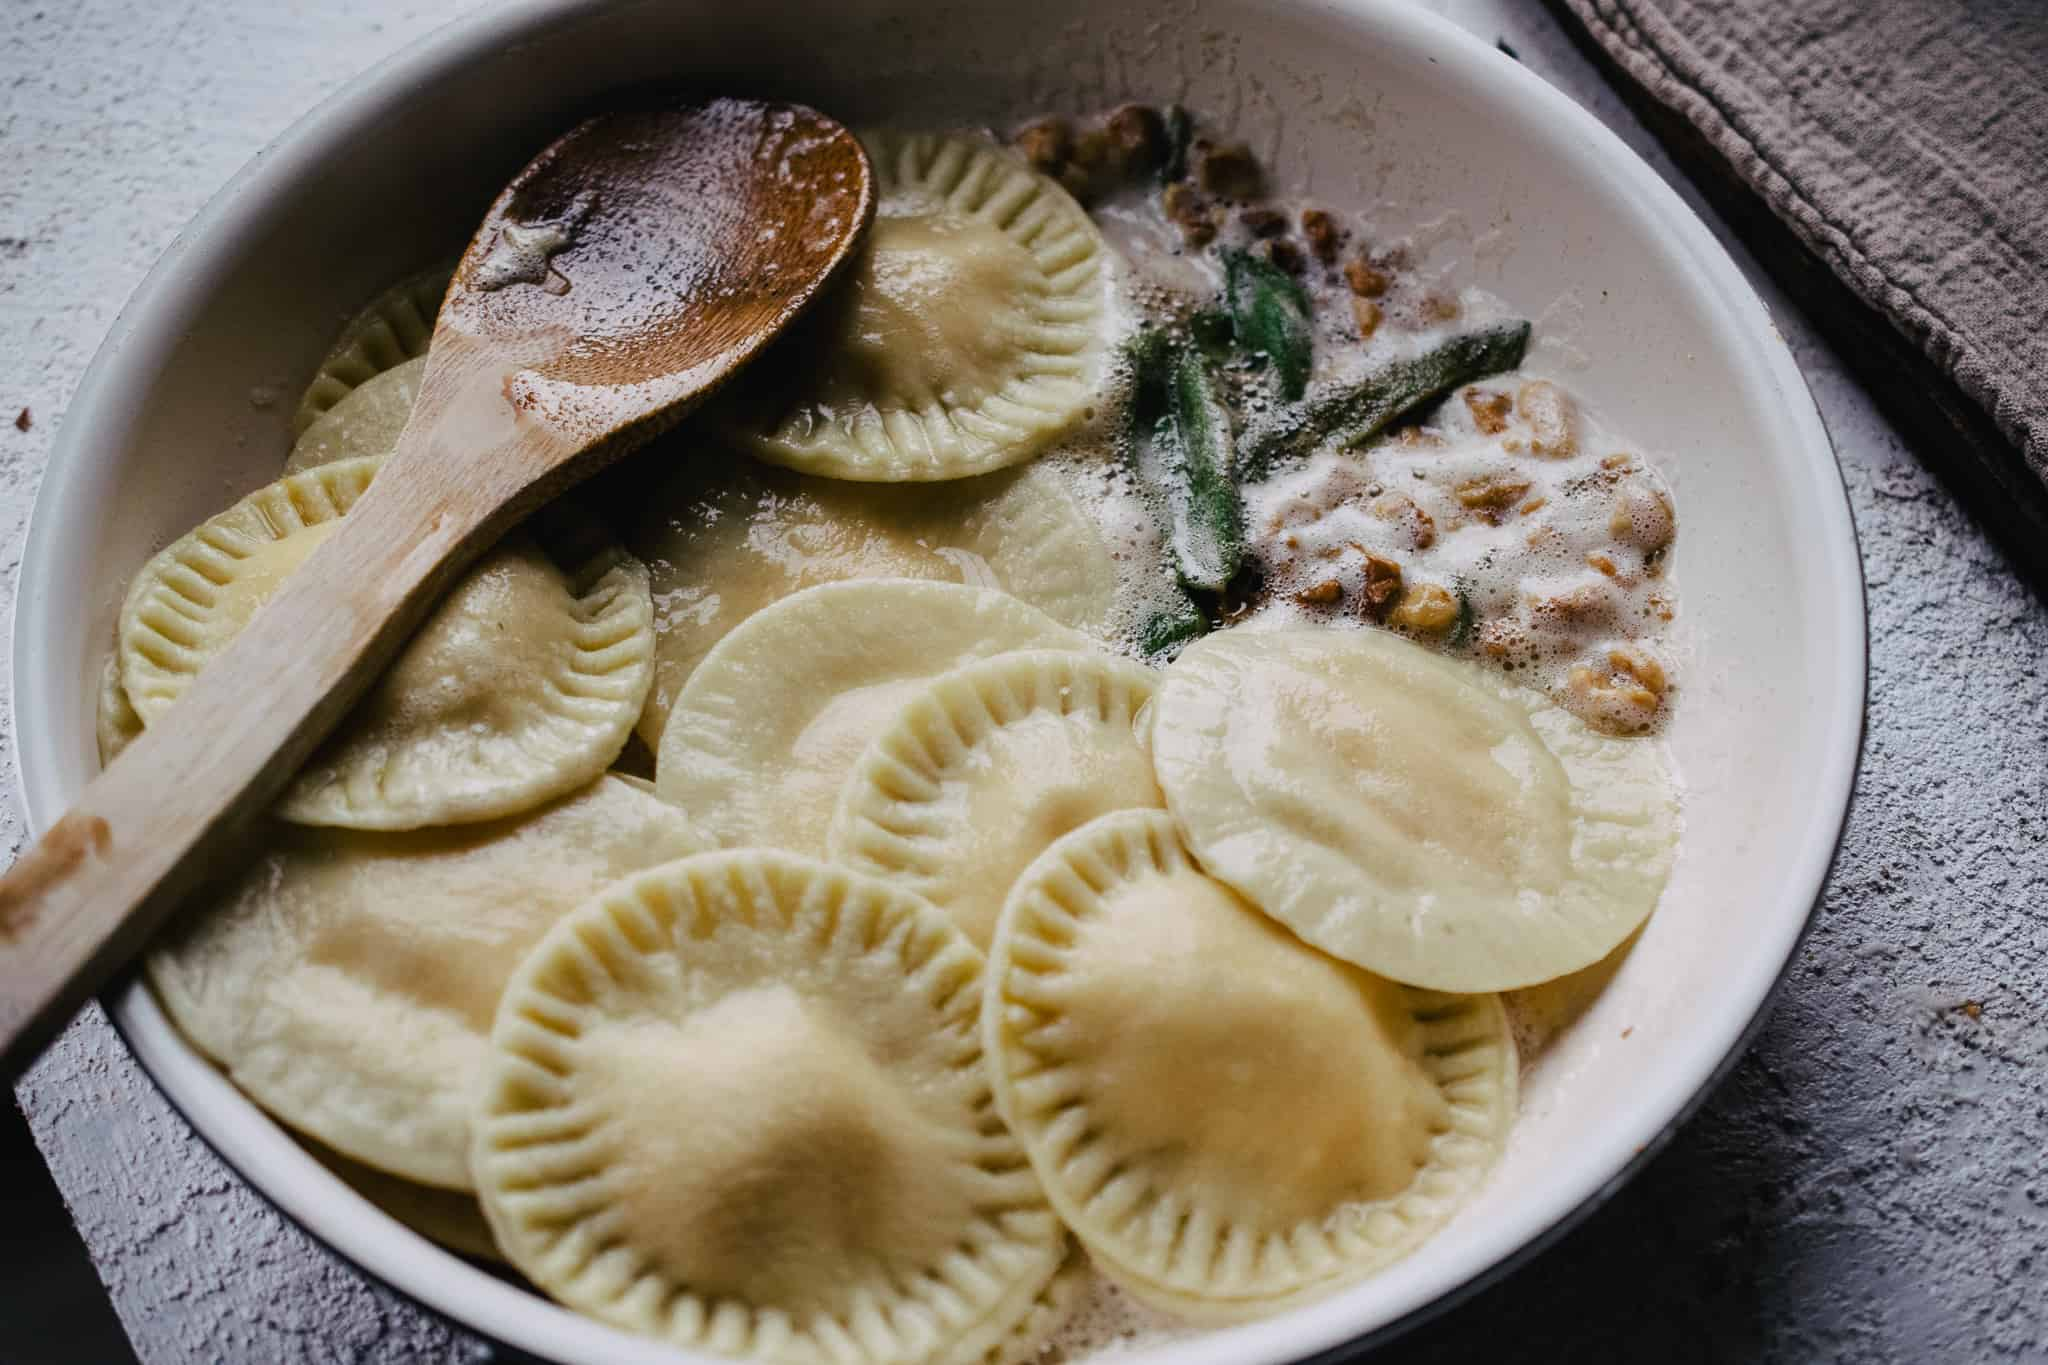 freshly cooked raviolis added to a skillet of browned butter, walnuts and fried sage about to be tossed and combined with a wooden spoon